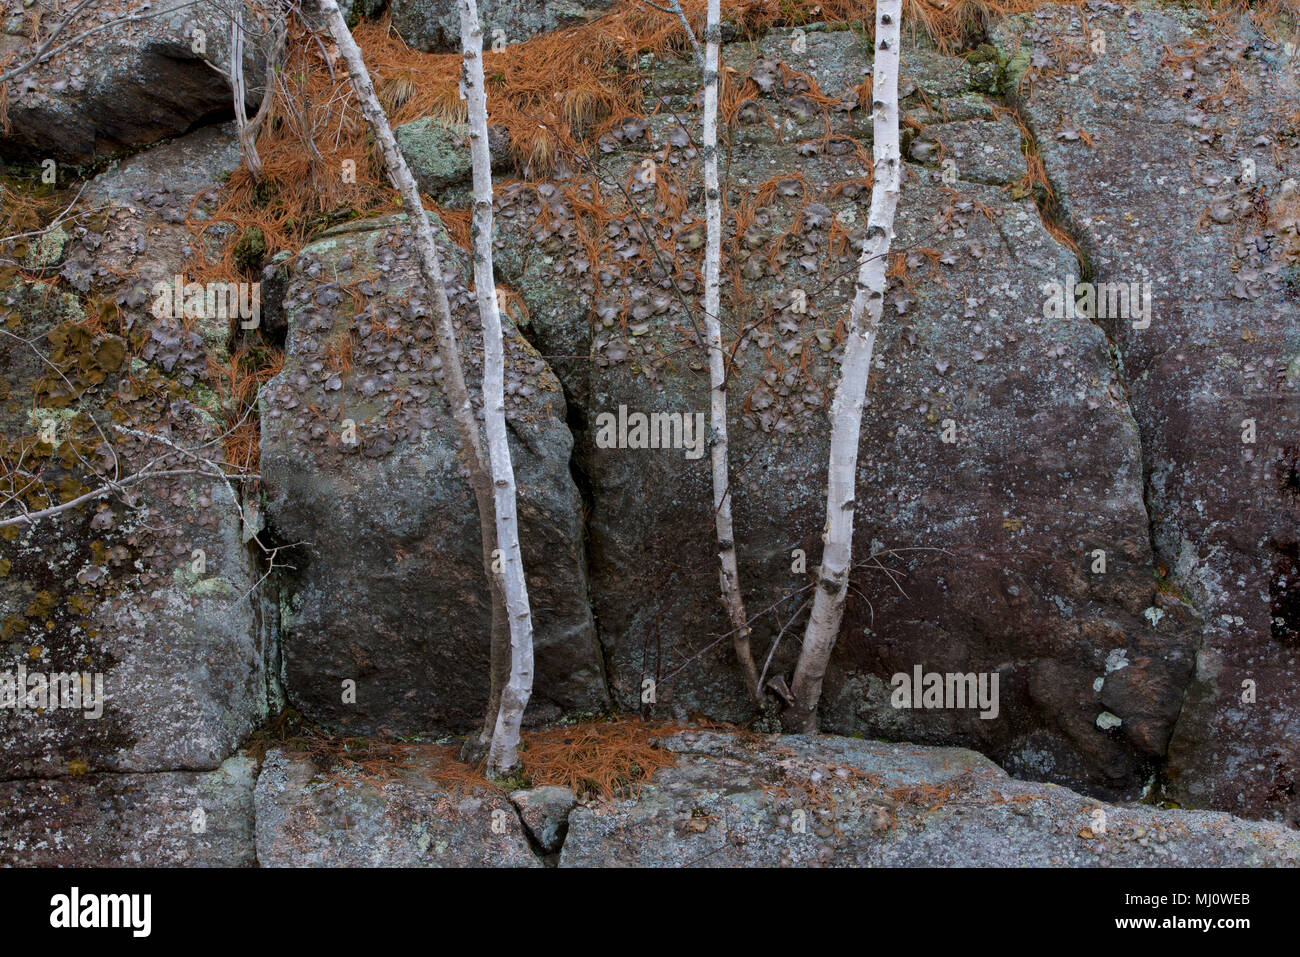 Birch trees survive in a rock-tumbled environment despite the lack of soil, in Queen Elizabeth II Wildlands Provincial Park, Ontario, Canada. - Stock Image